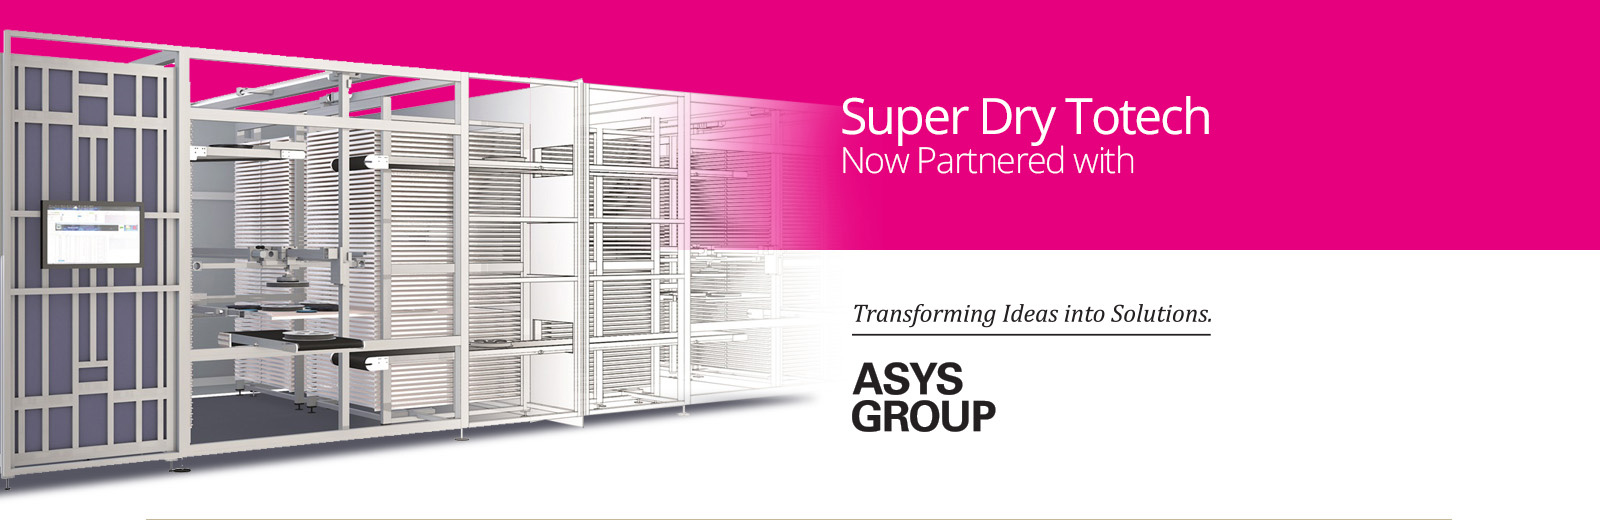 Super Dry Totech - a member of the ASYS Group